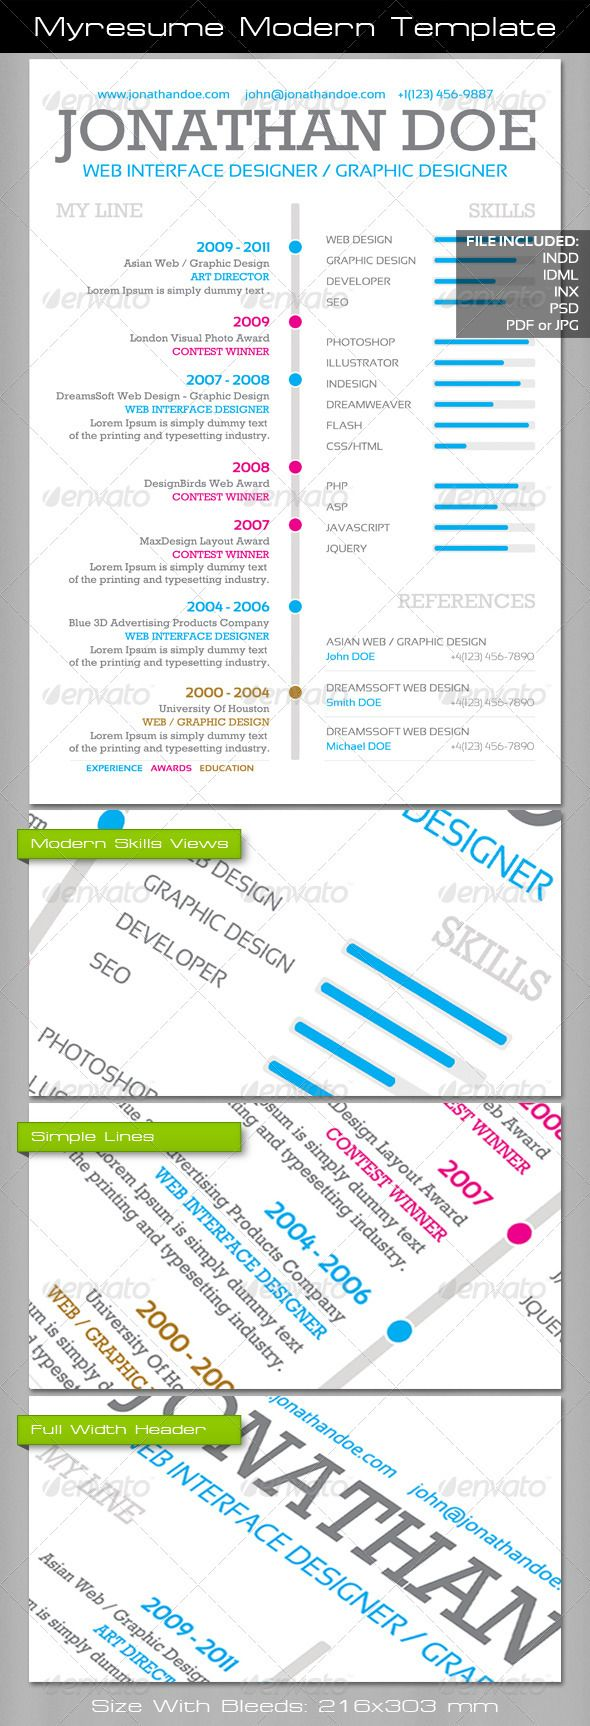 best images about photoshop resume templates myresume modern template award education experience resume realistic photo graphic print obejct business web elements illustration design